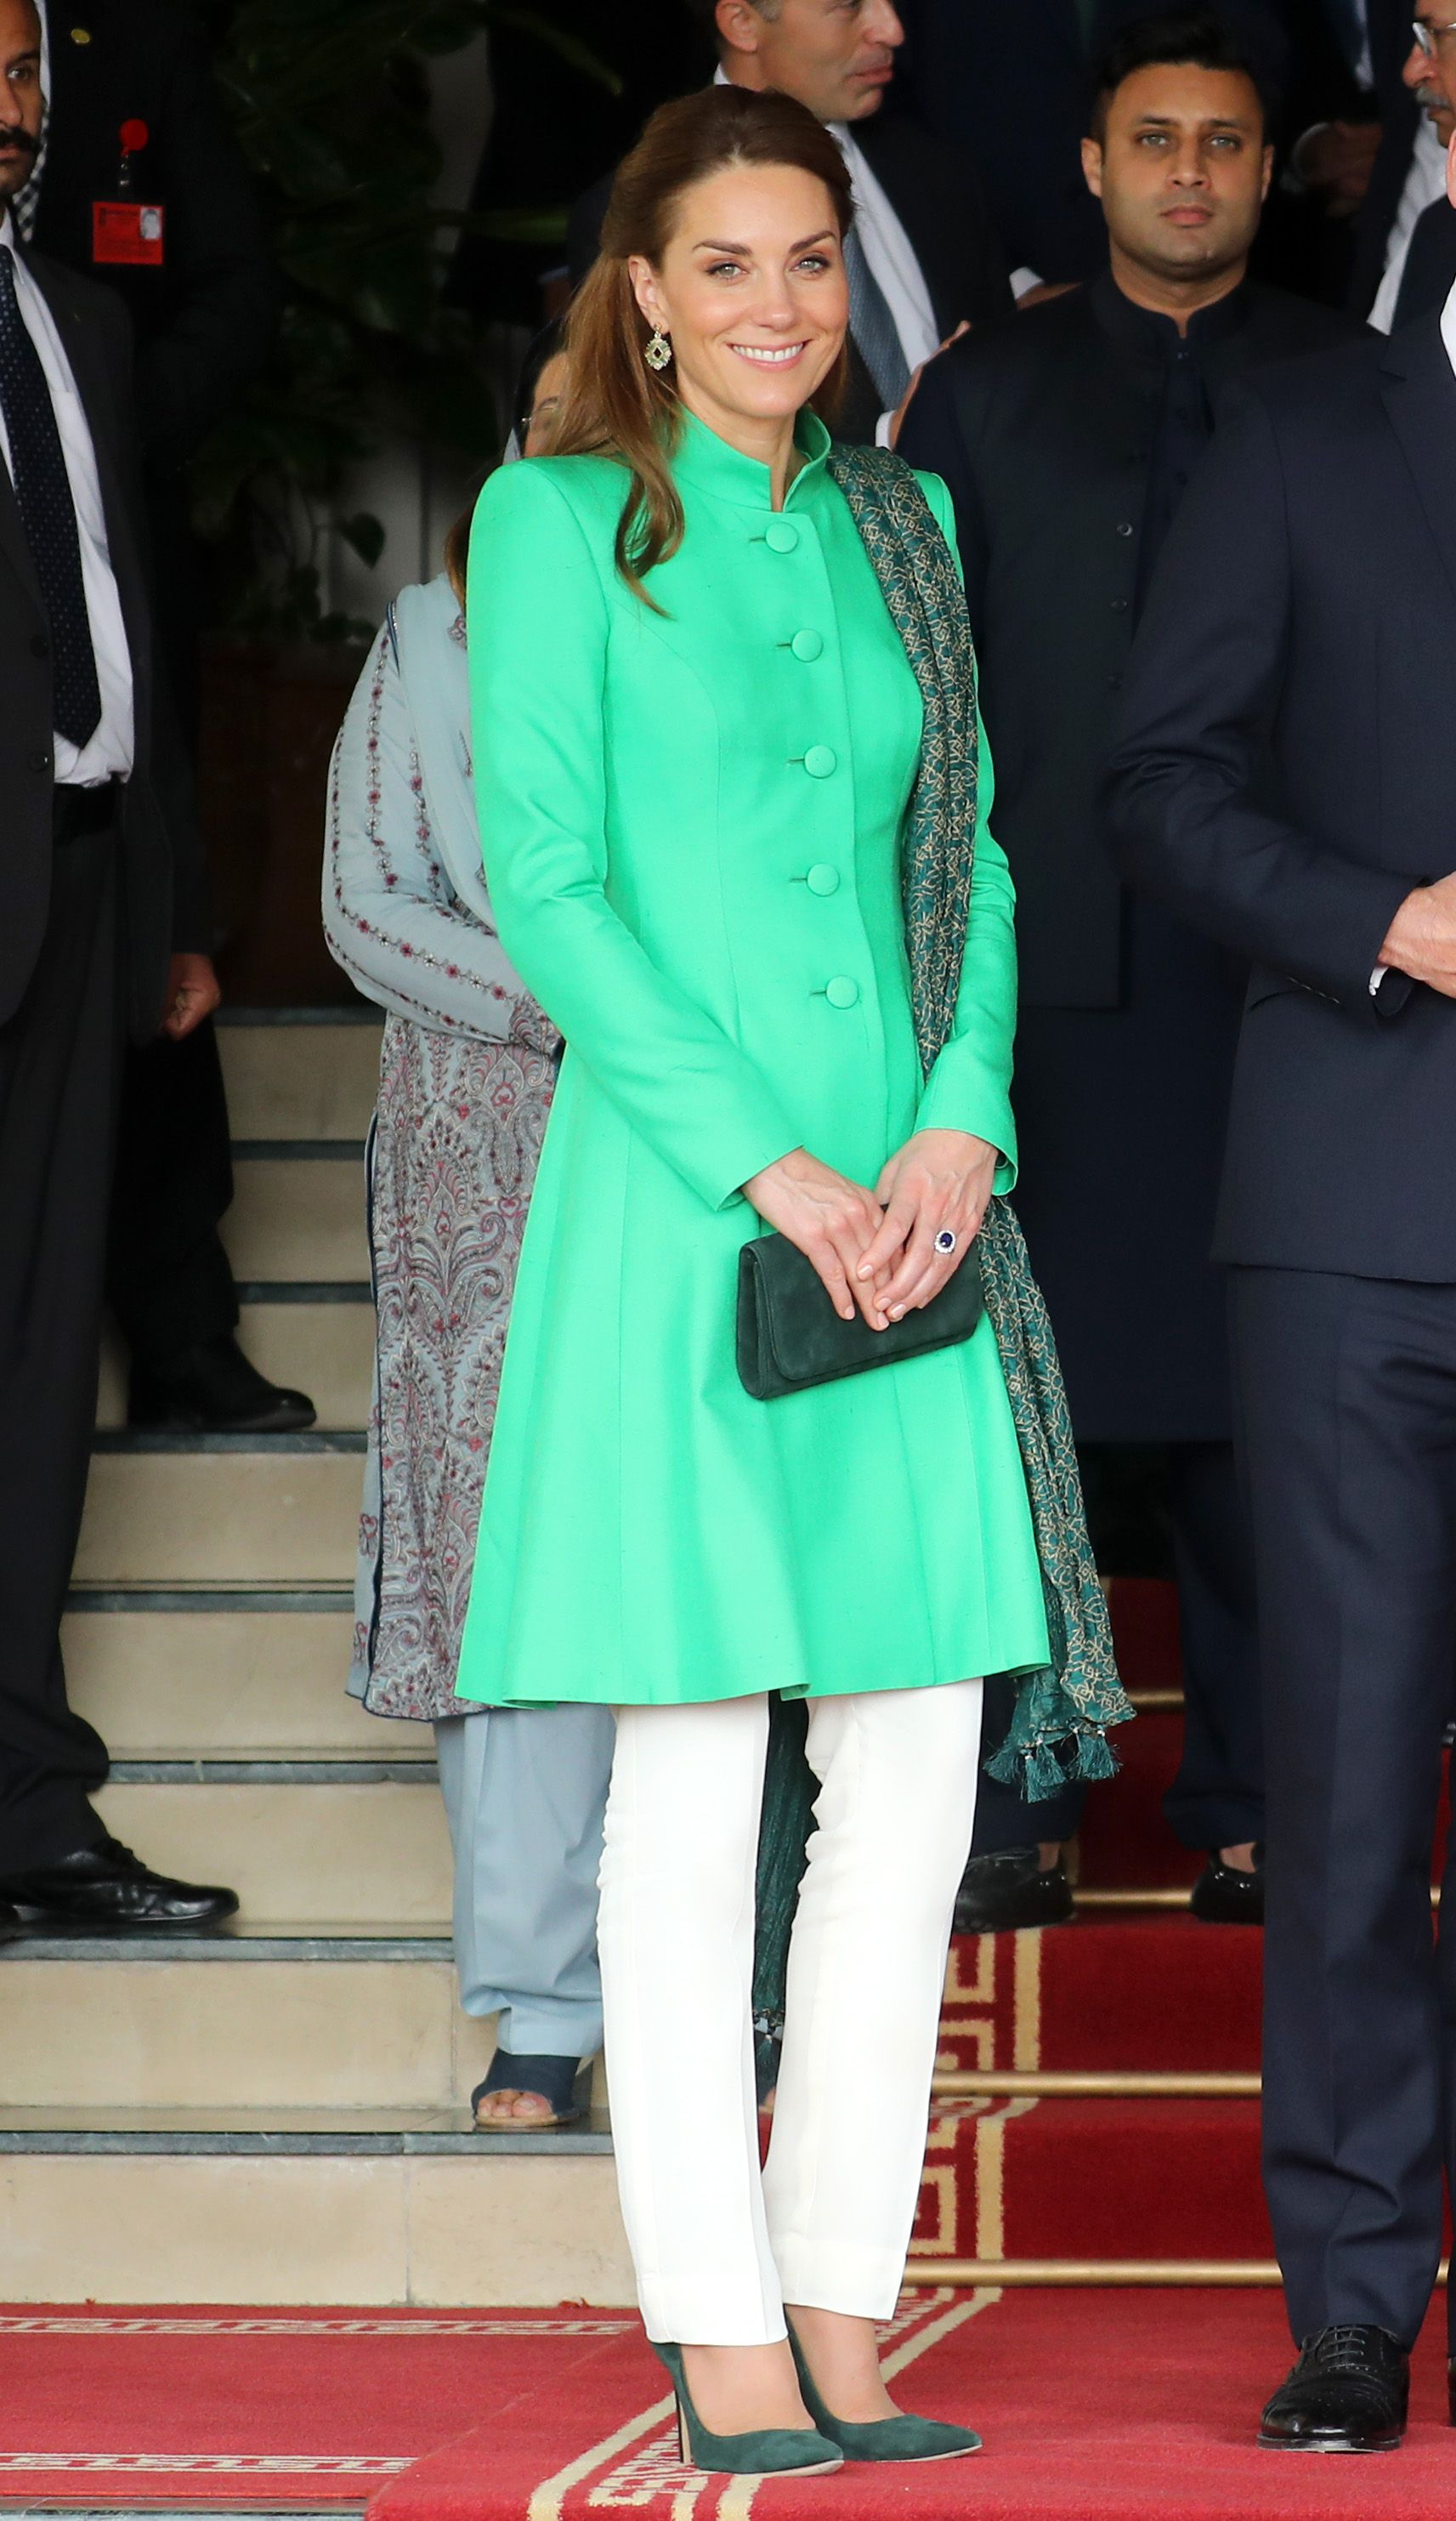 Kate Middleton's Greatest Style Moments